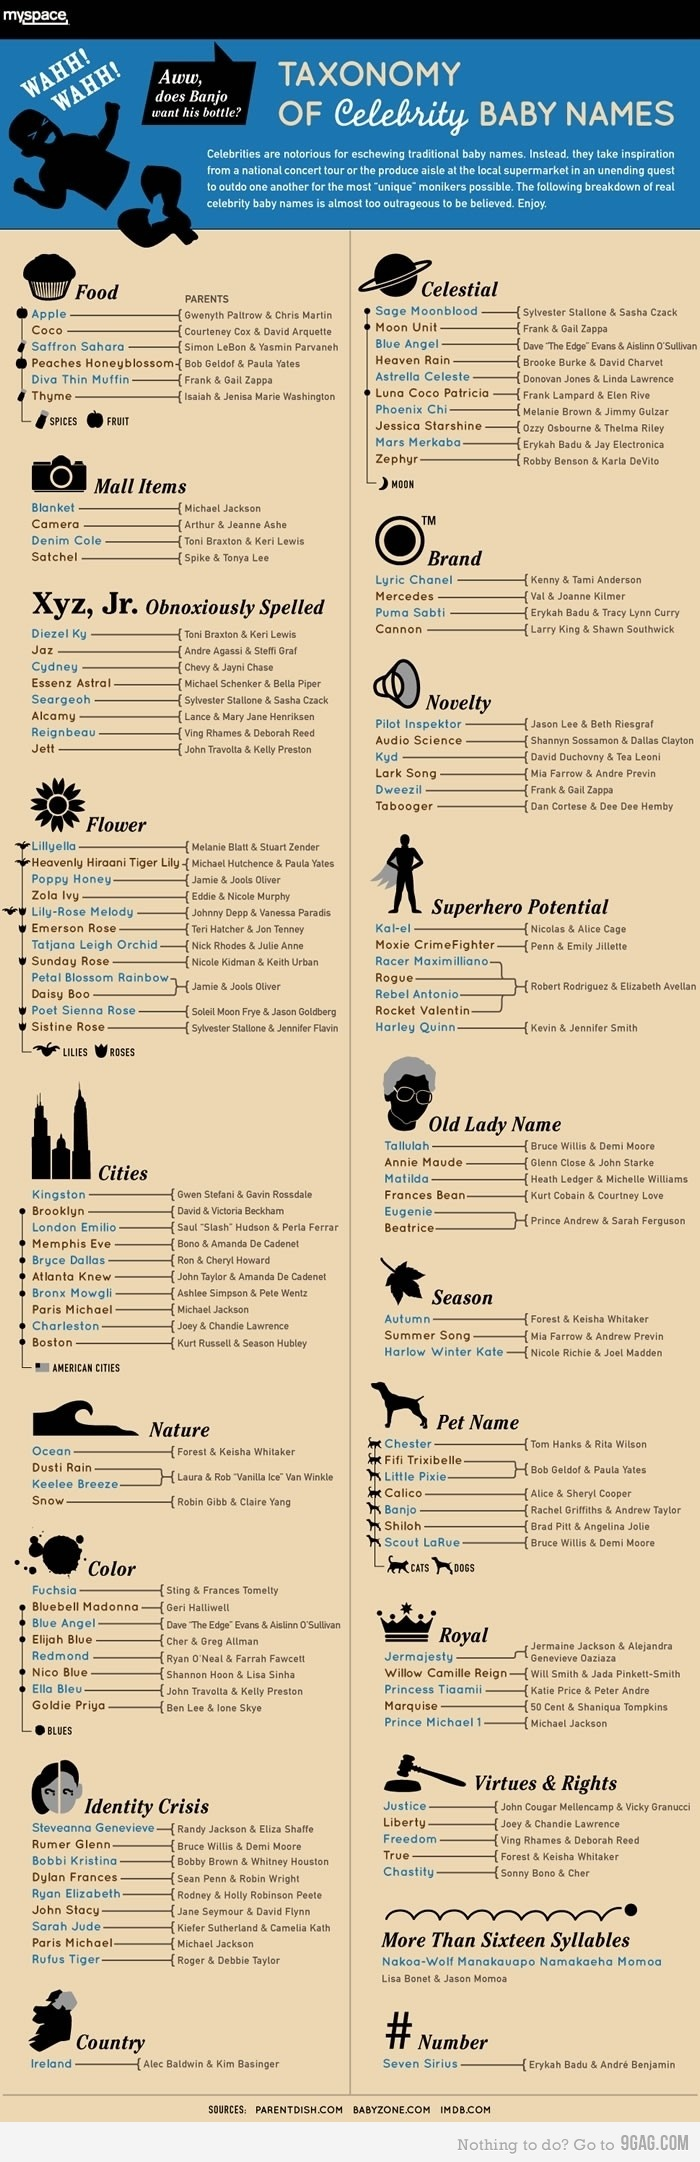 Taxonomy of Celebrity Baby Names